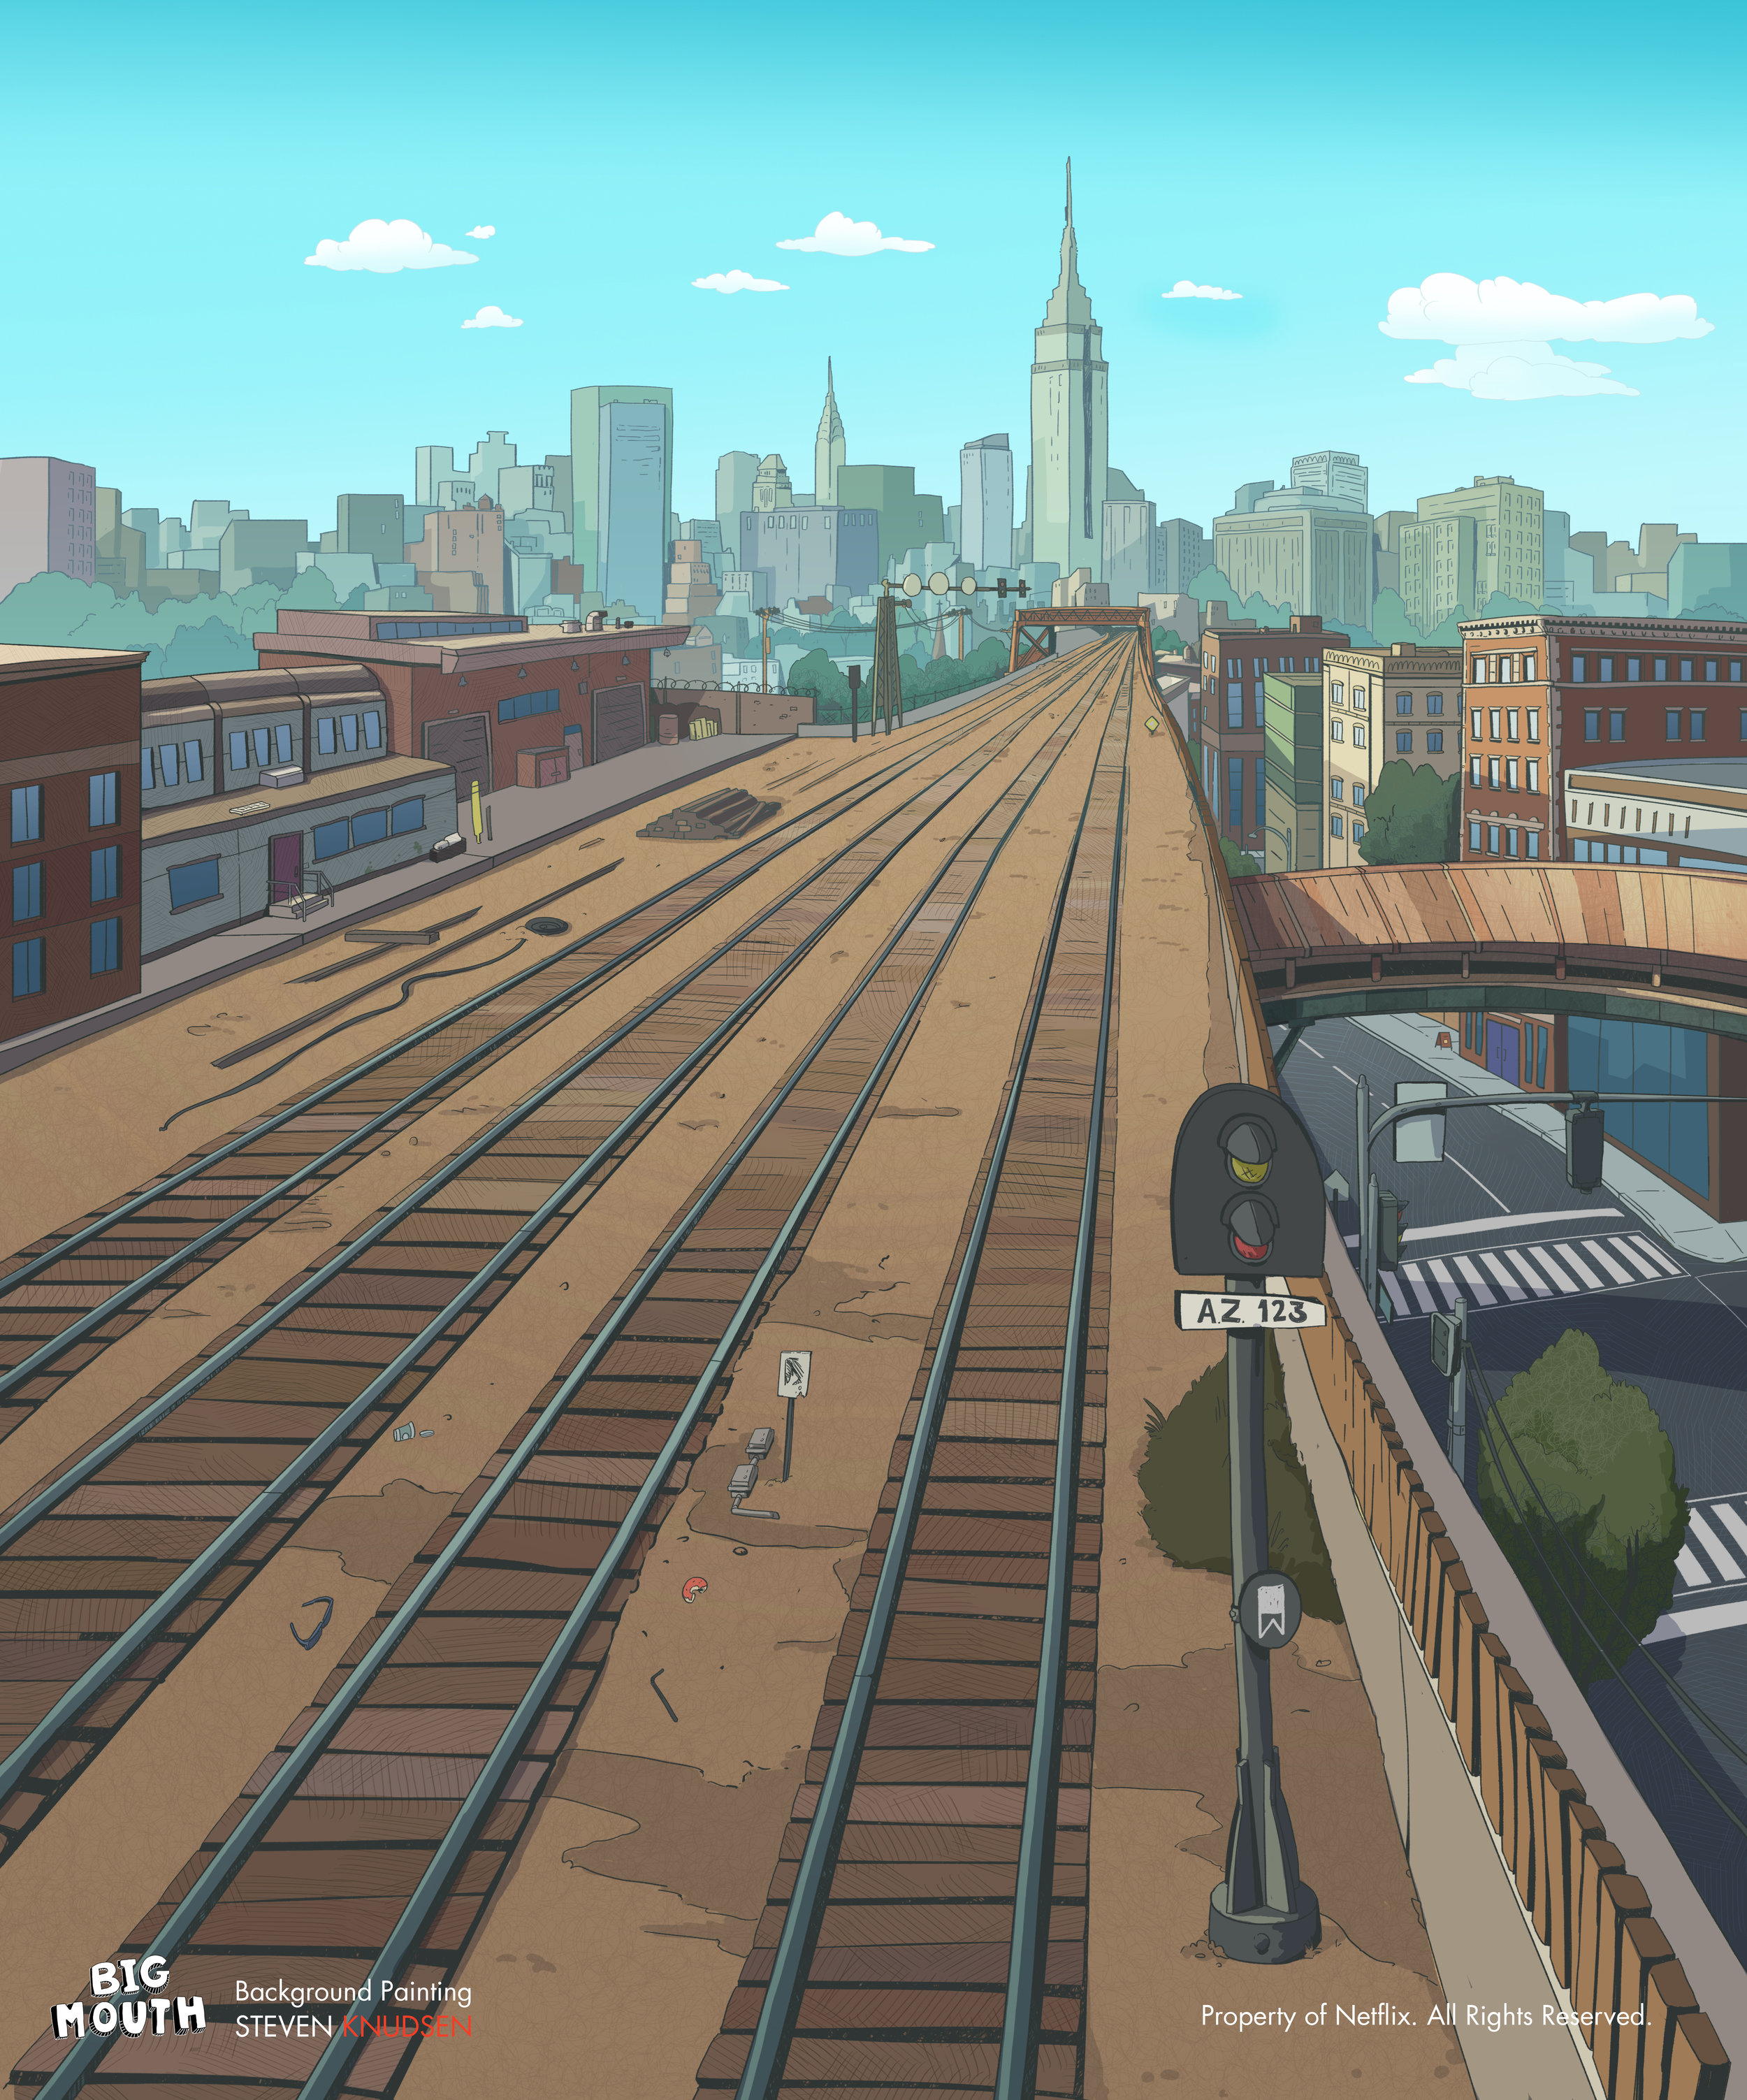 BM106_BG_F001_EXT_SUBURBAN_TRAIN_STATION_PAN_DAY_SK_v01.jpg